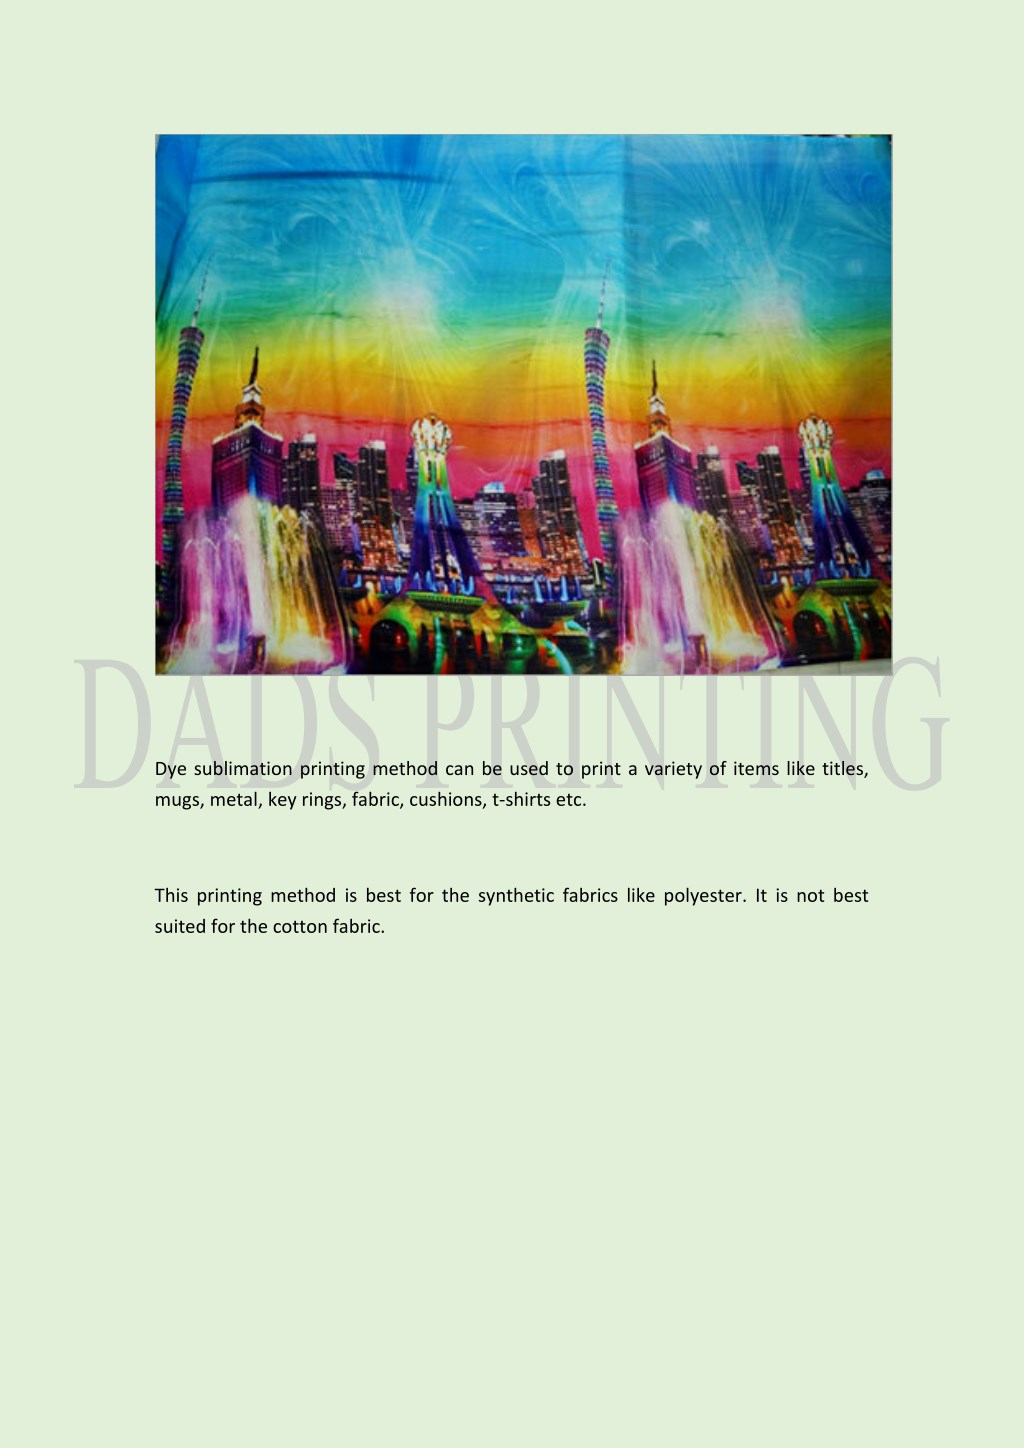 PPT - How Dye Sublimation Printing Provides Benefits To The